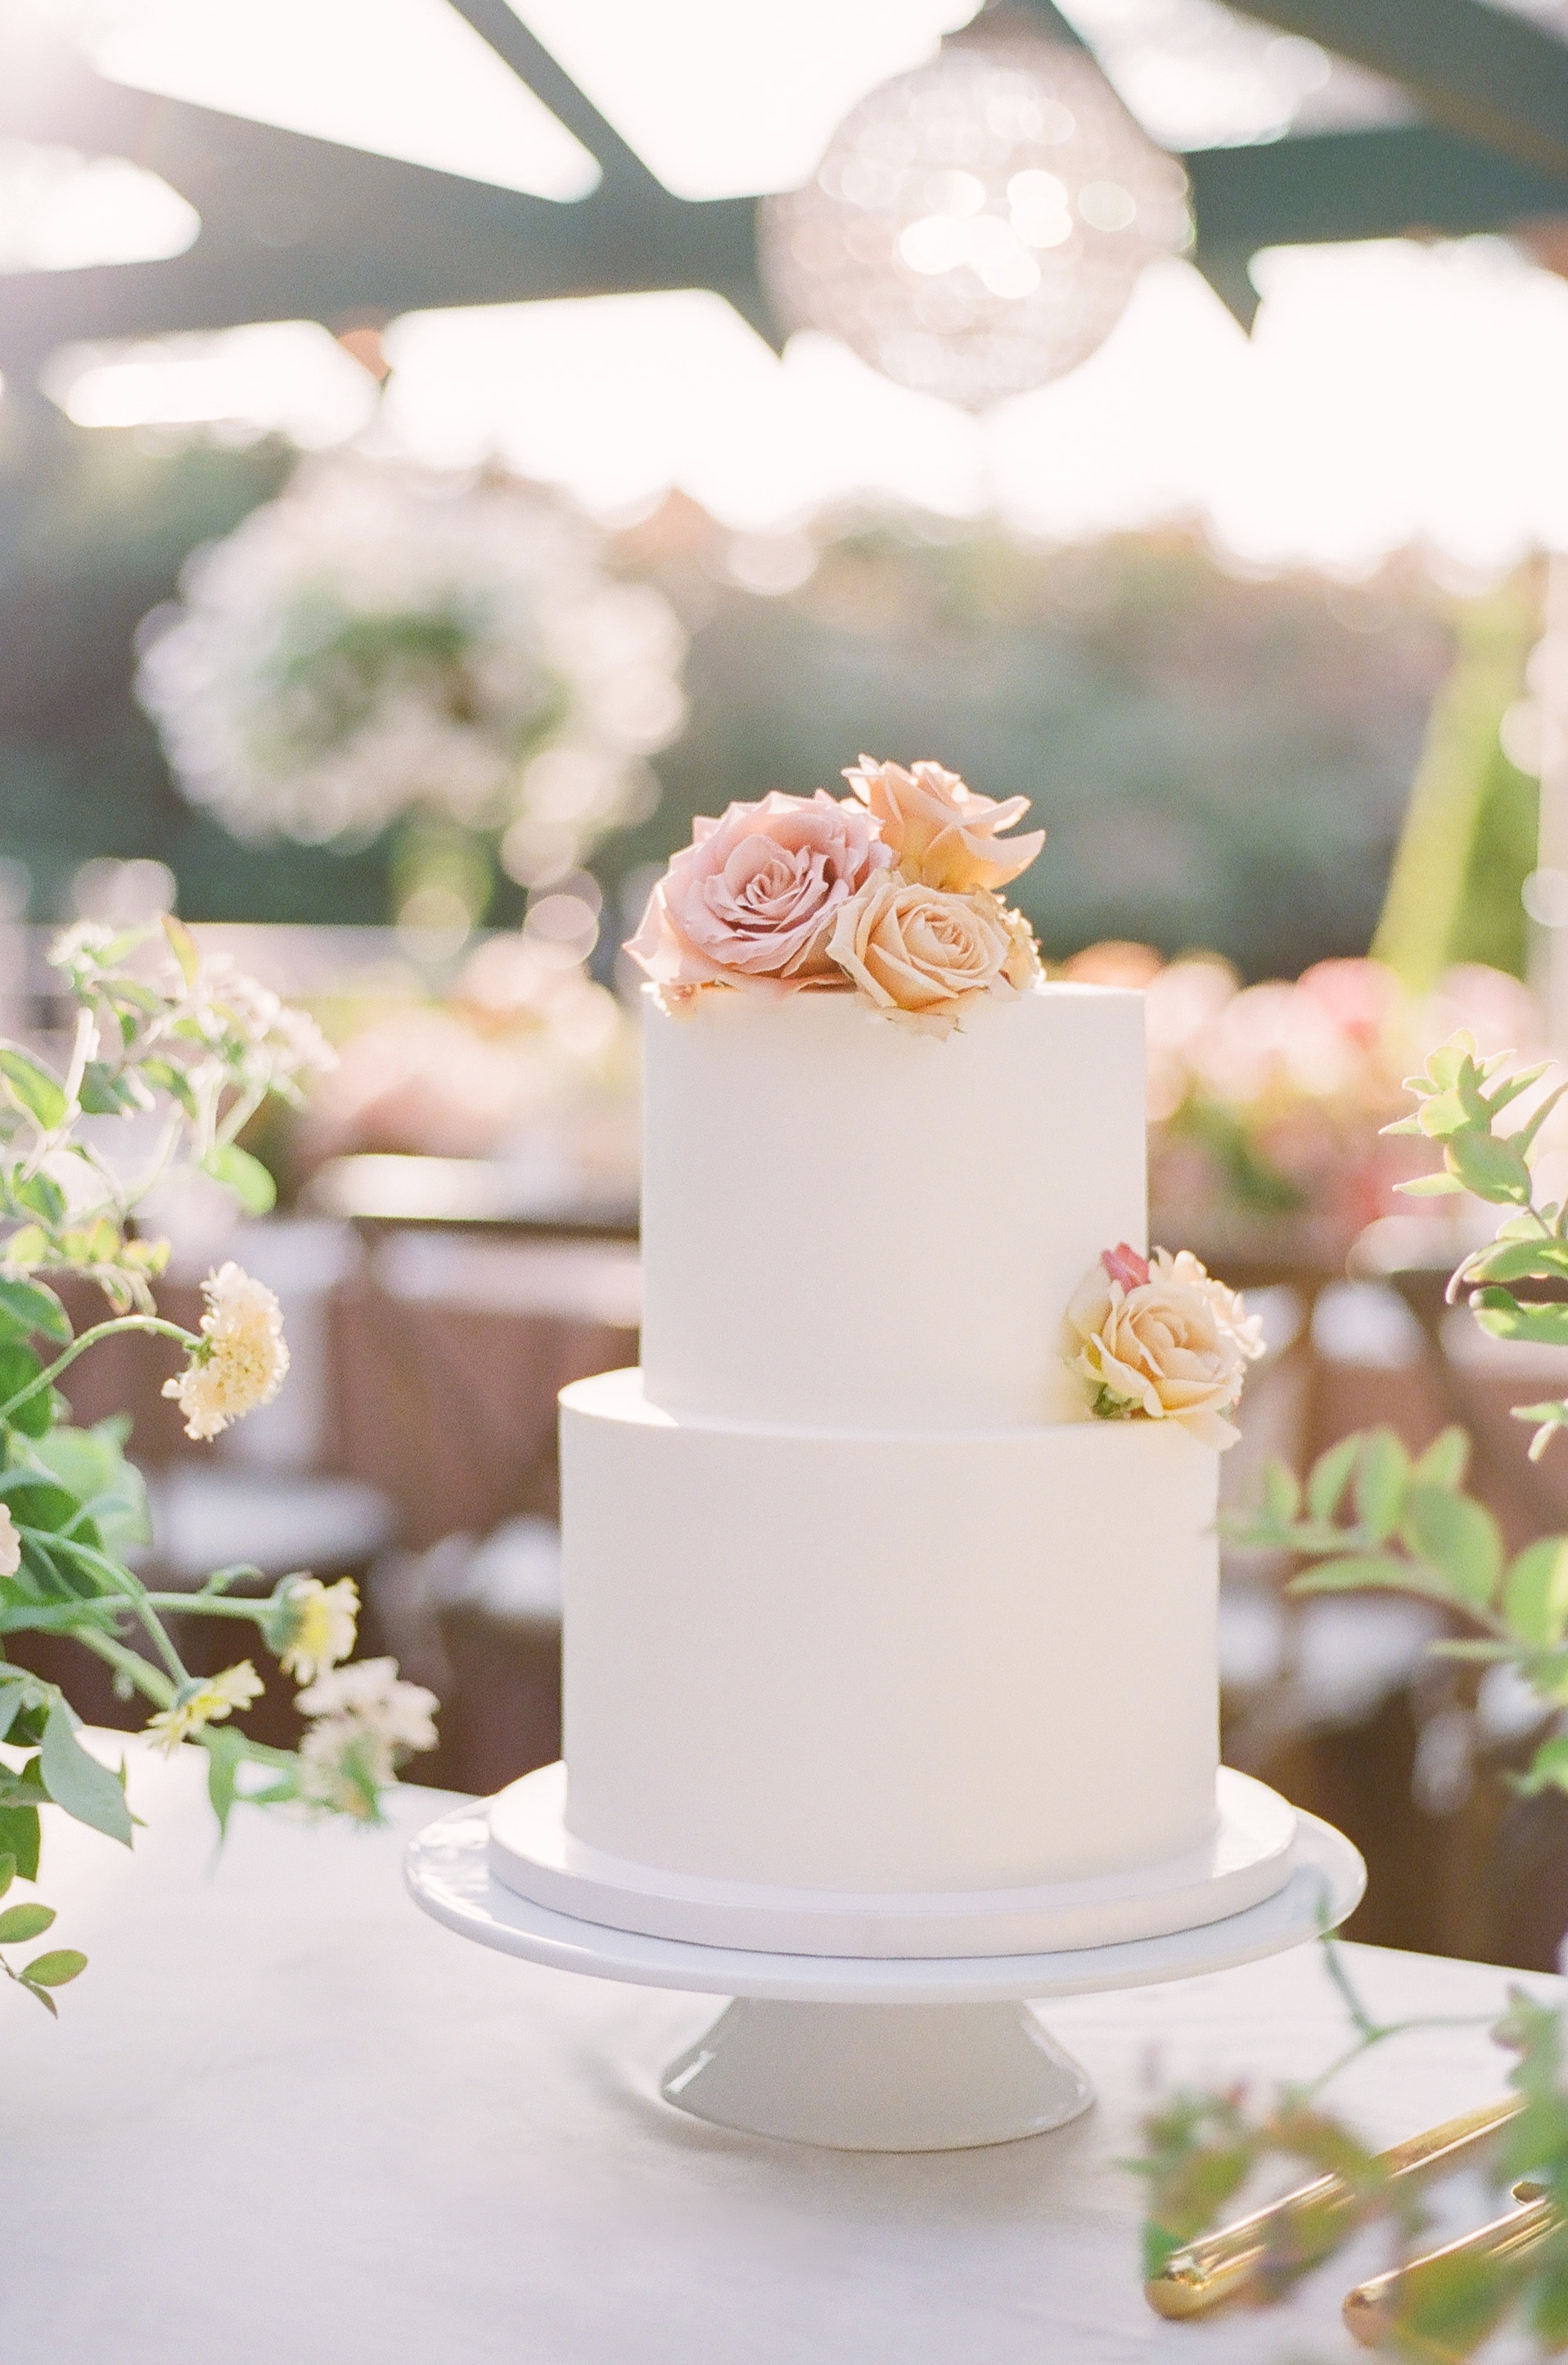 evelyn sam wedding 2-tier white cake with floral accents